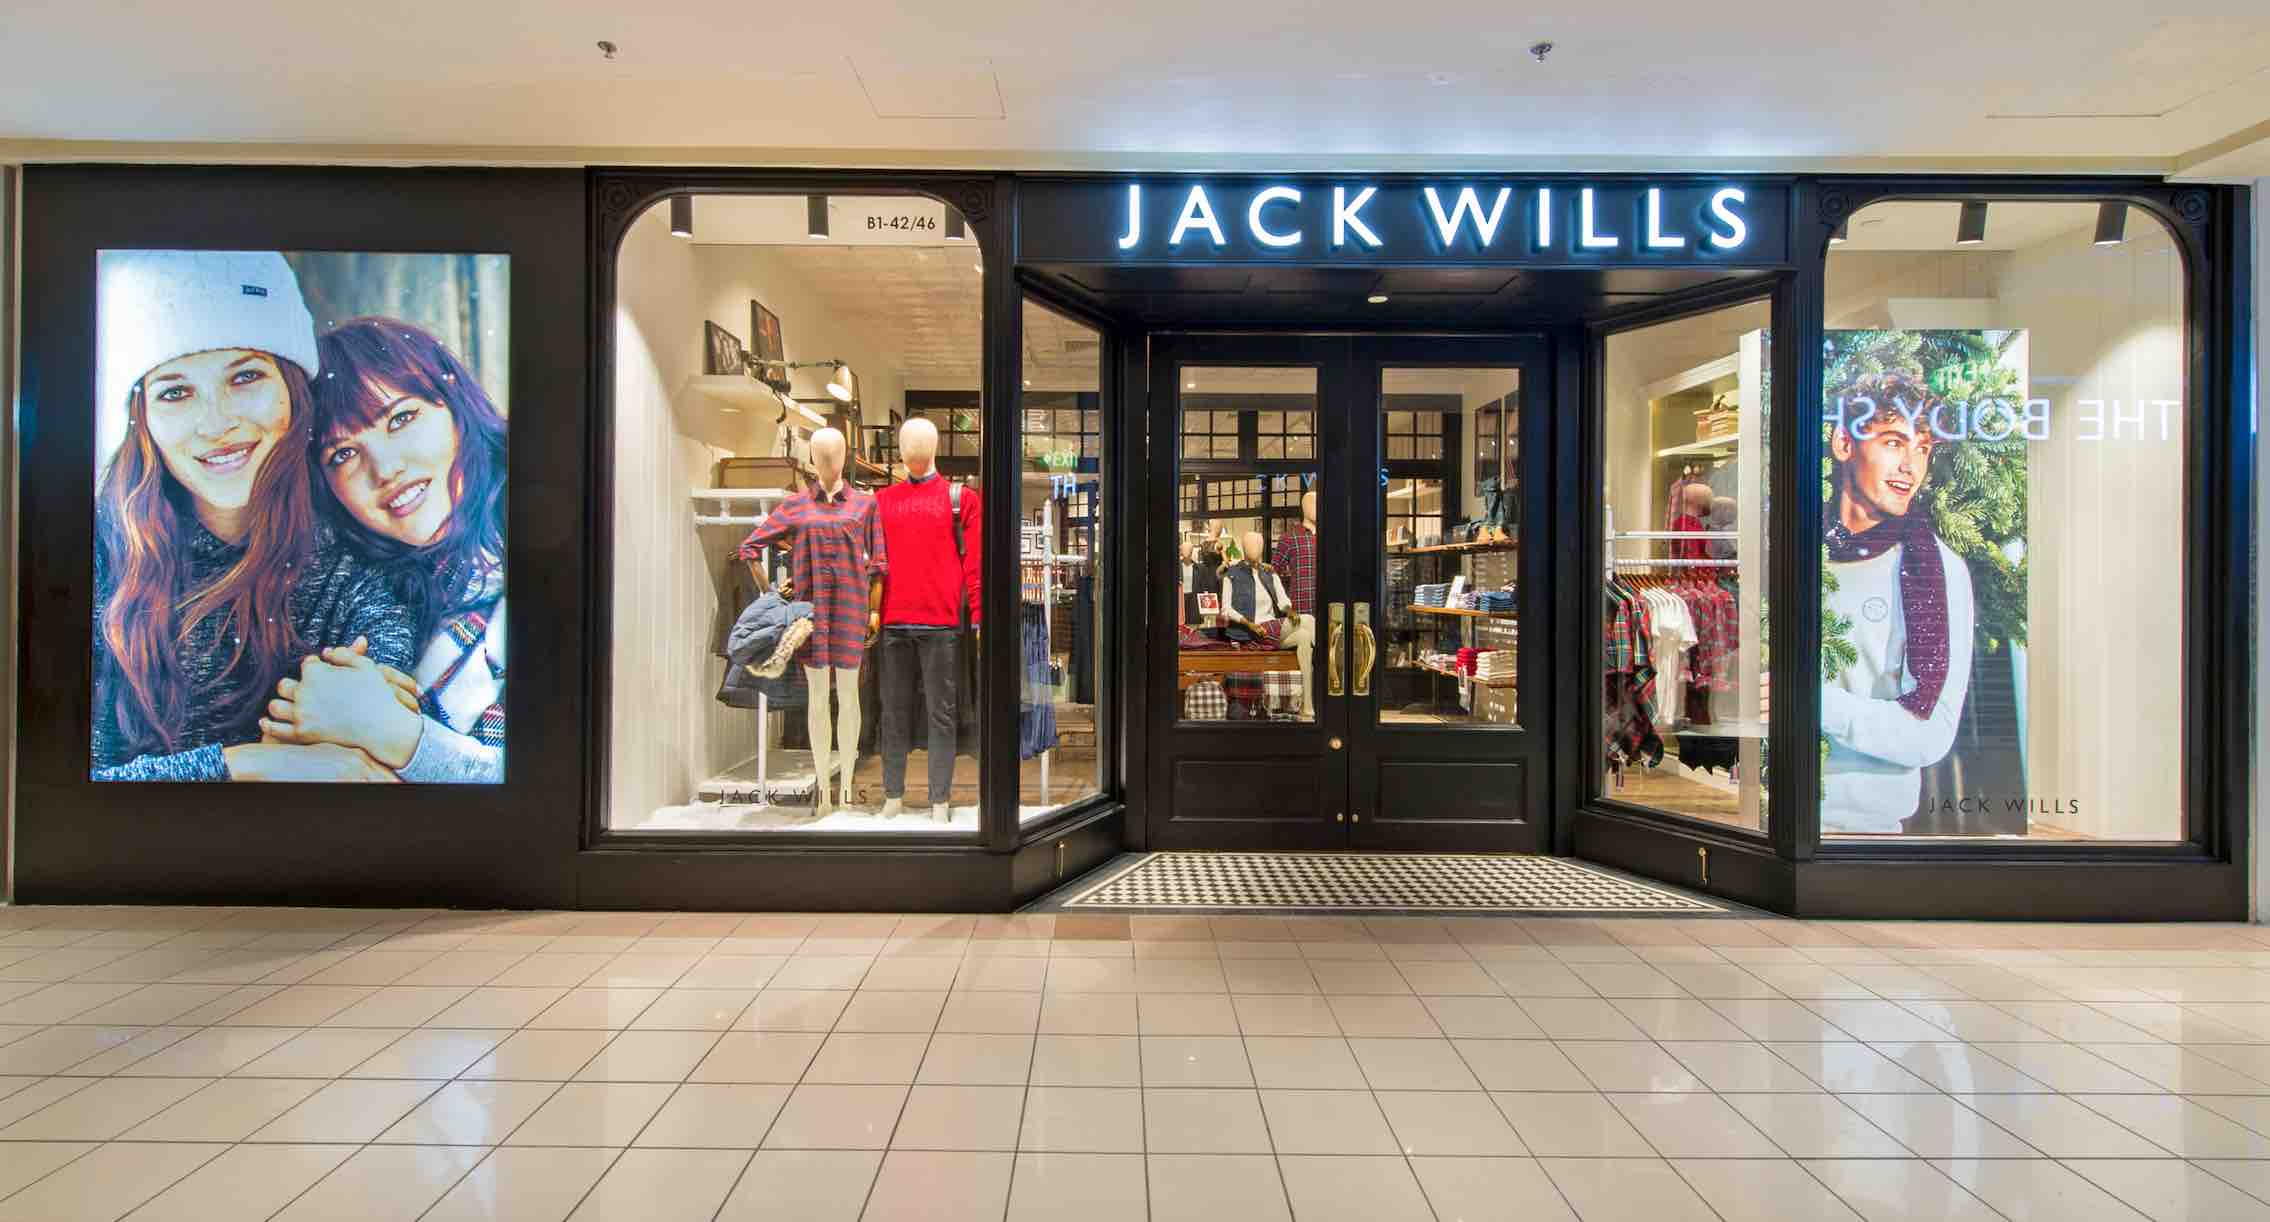 jack-wills-outlet-shopfront-at-ngee-ann-city-aspirantsg